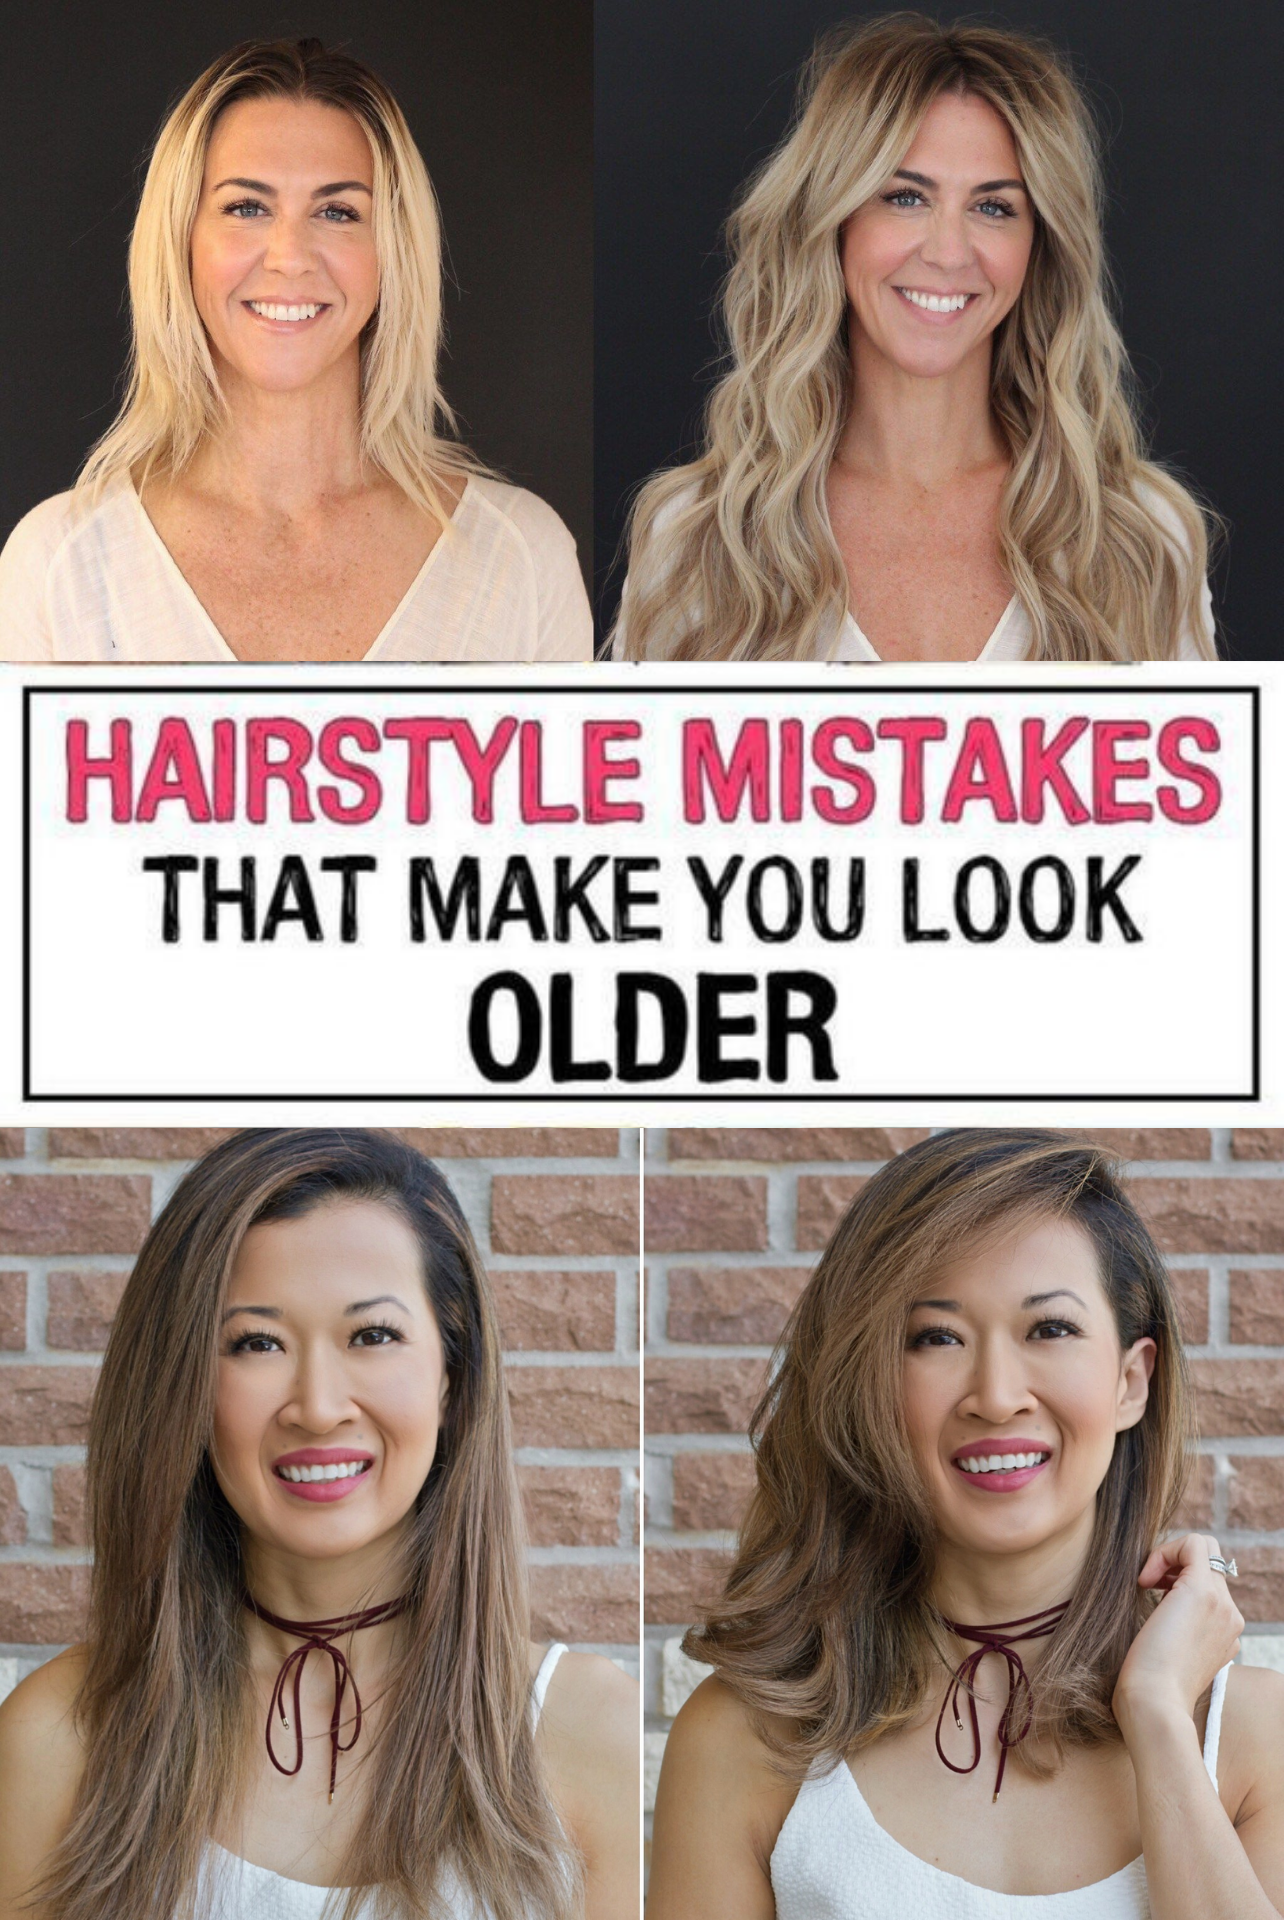 37 Hairstyle Mistakes That Are Aging You In 2020 Hairstyle Hair Mistakes Hair Advice